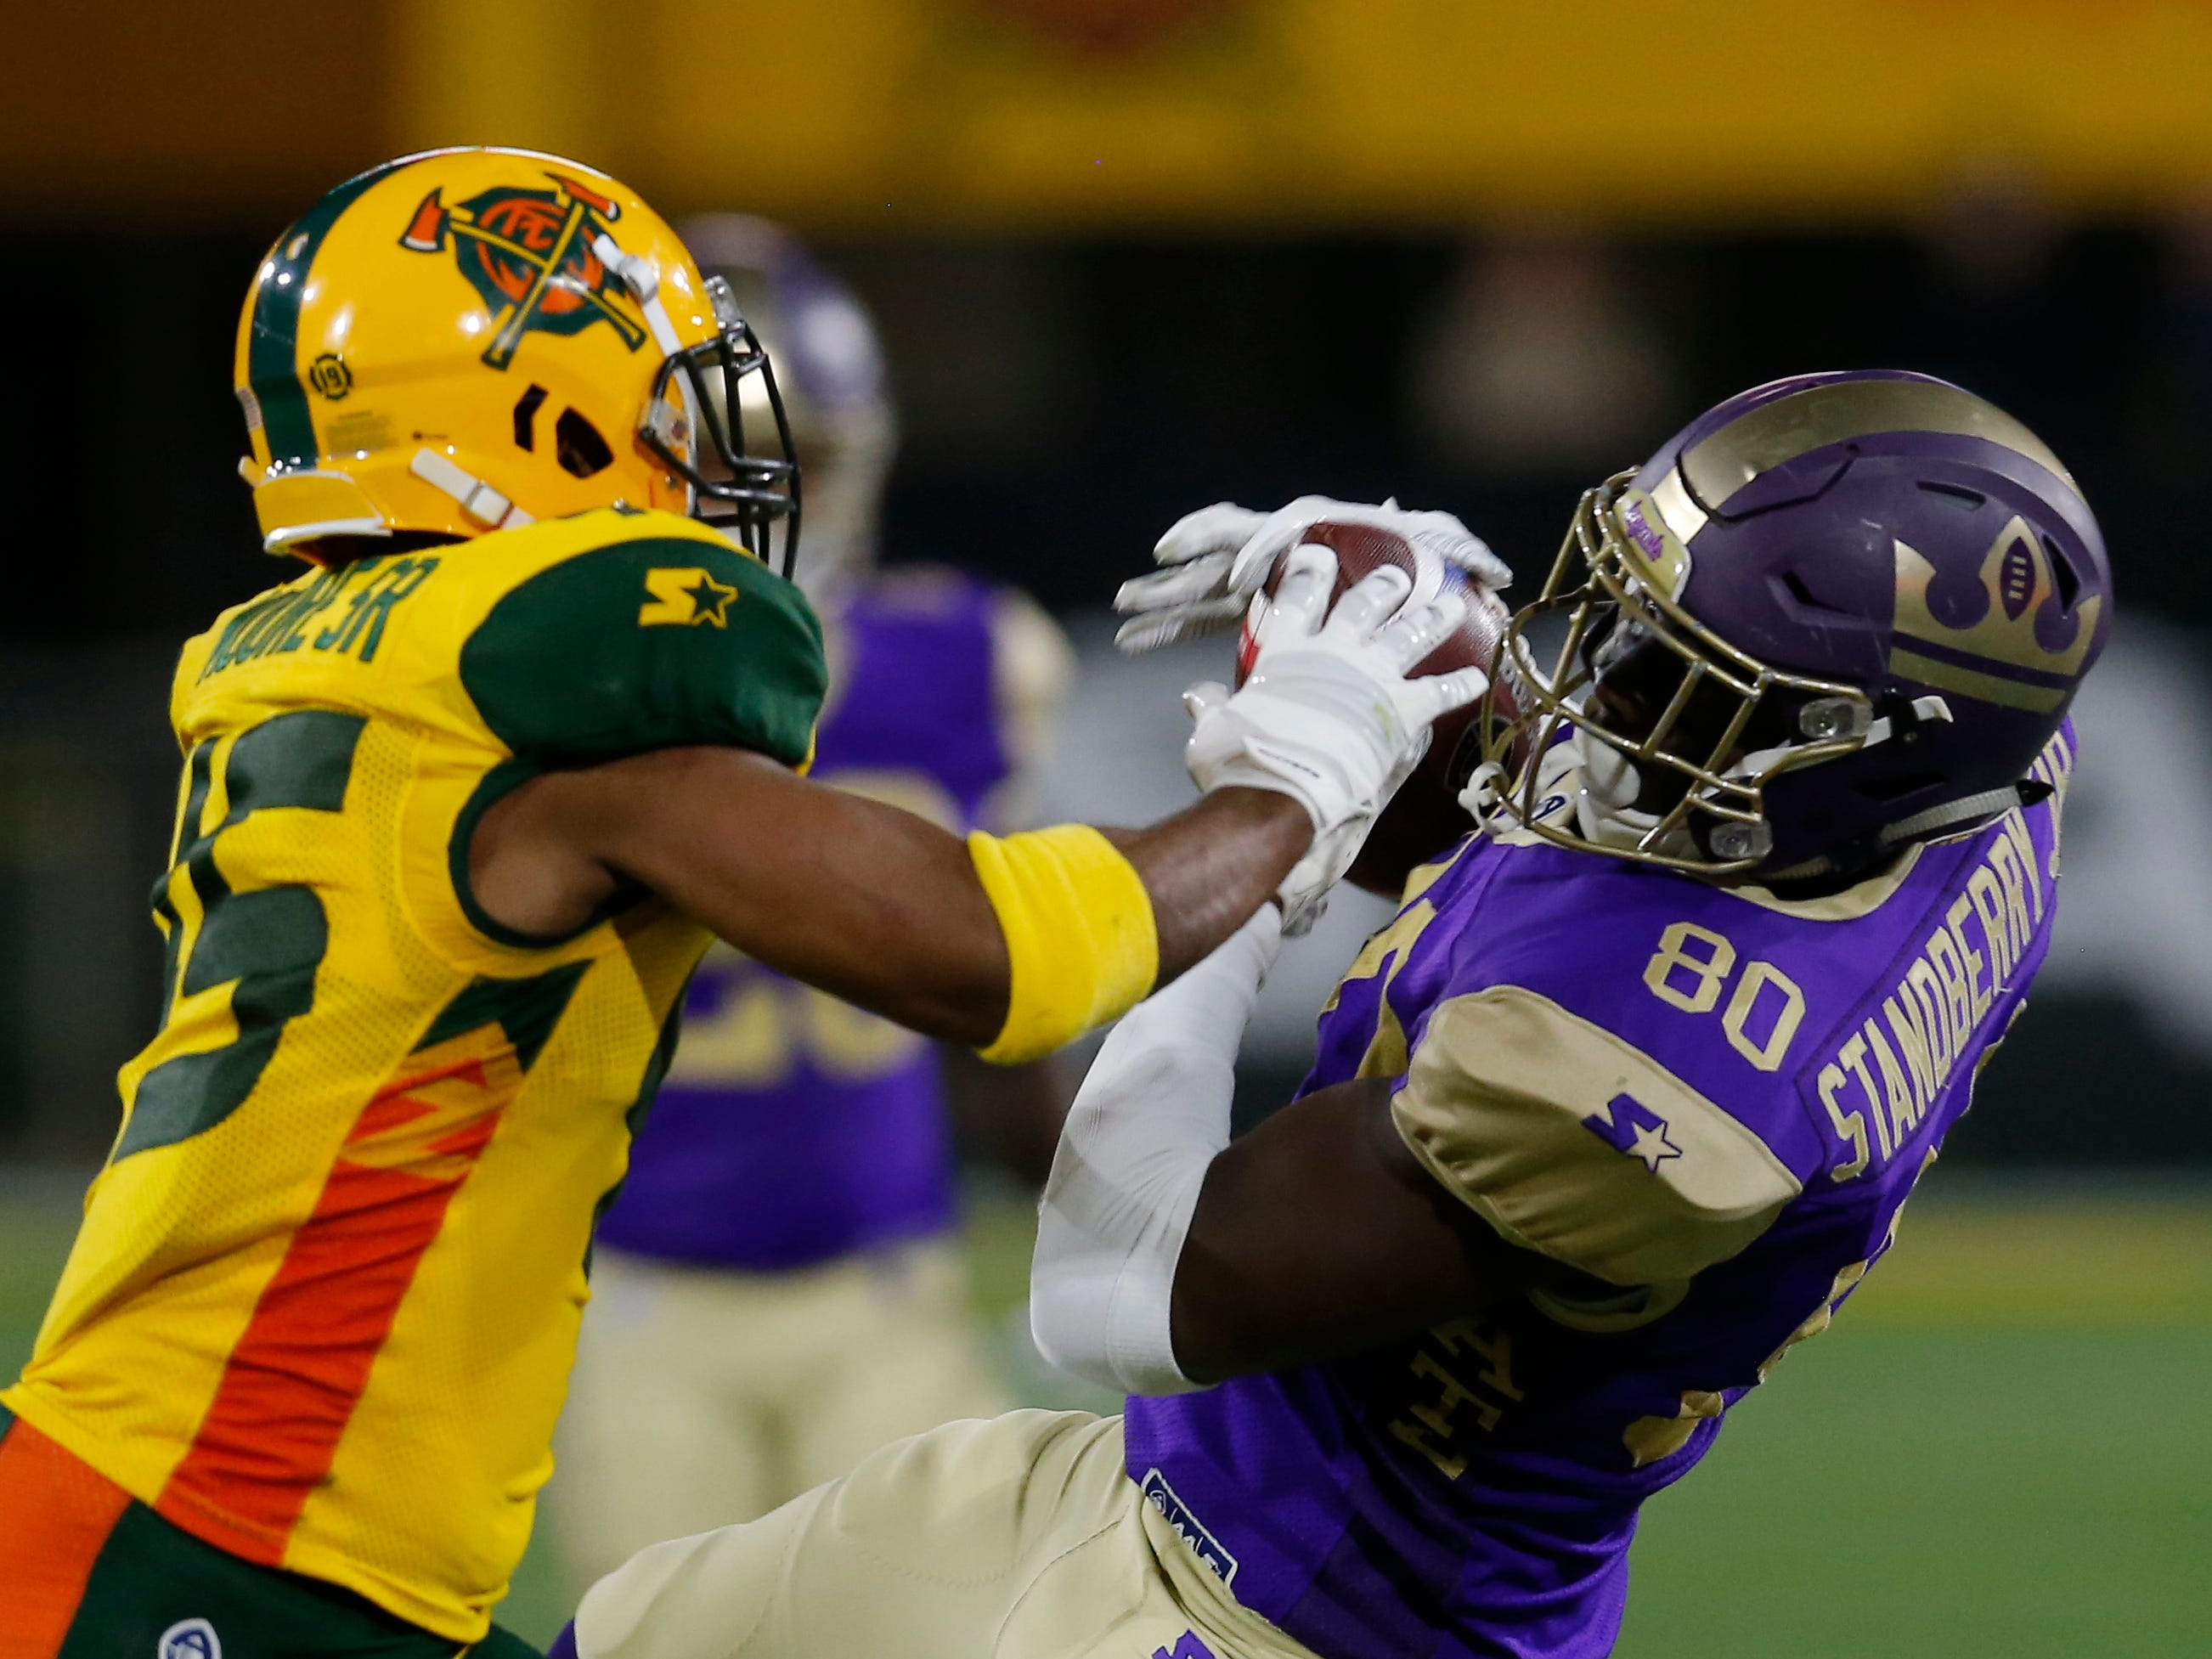 Atlanta Legends tight end Charles Standberry Jr. (80) catches the ball while being pressured by Arizona Hotshots defensive back Rahim Moore (45) in the second half during an AAF football game, Sunday, March 3, 2019, at Sun Devil Stadium in Phoenix.